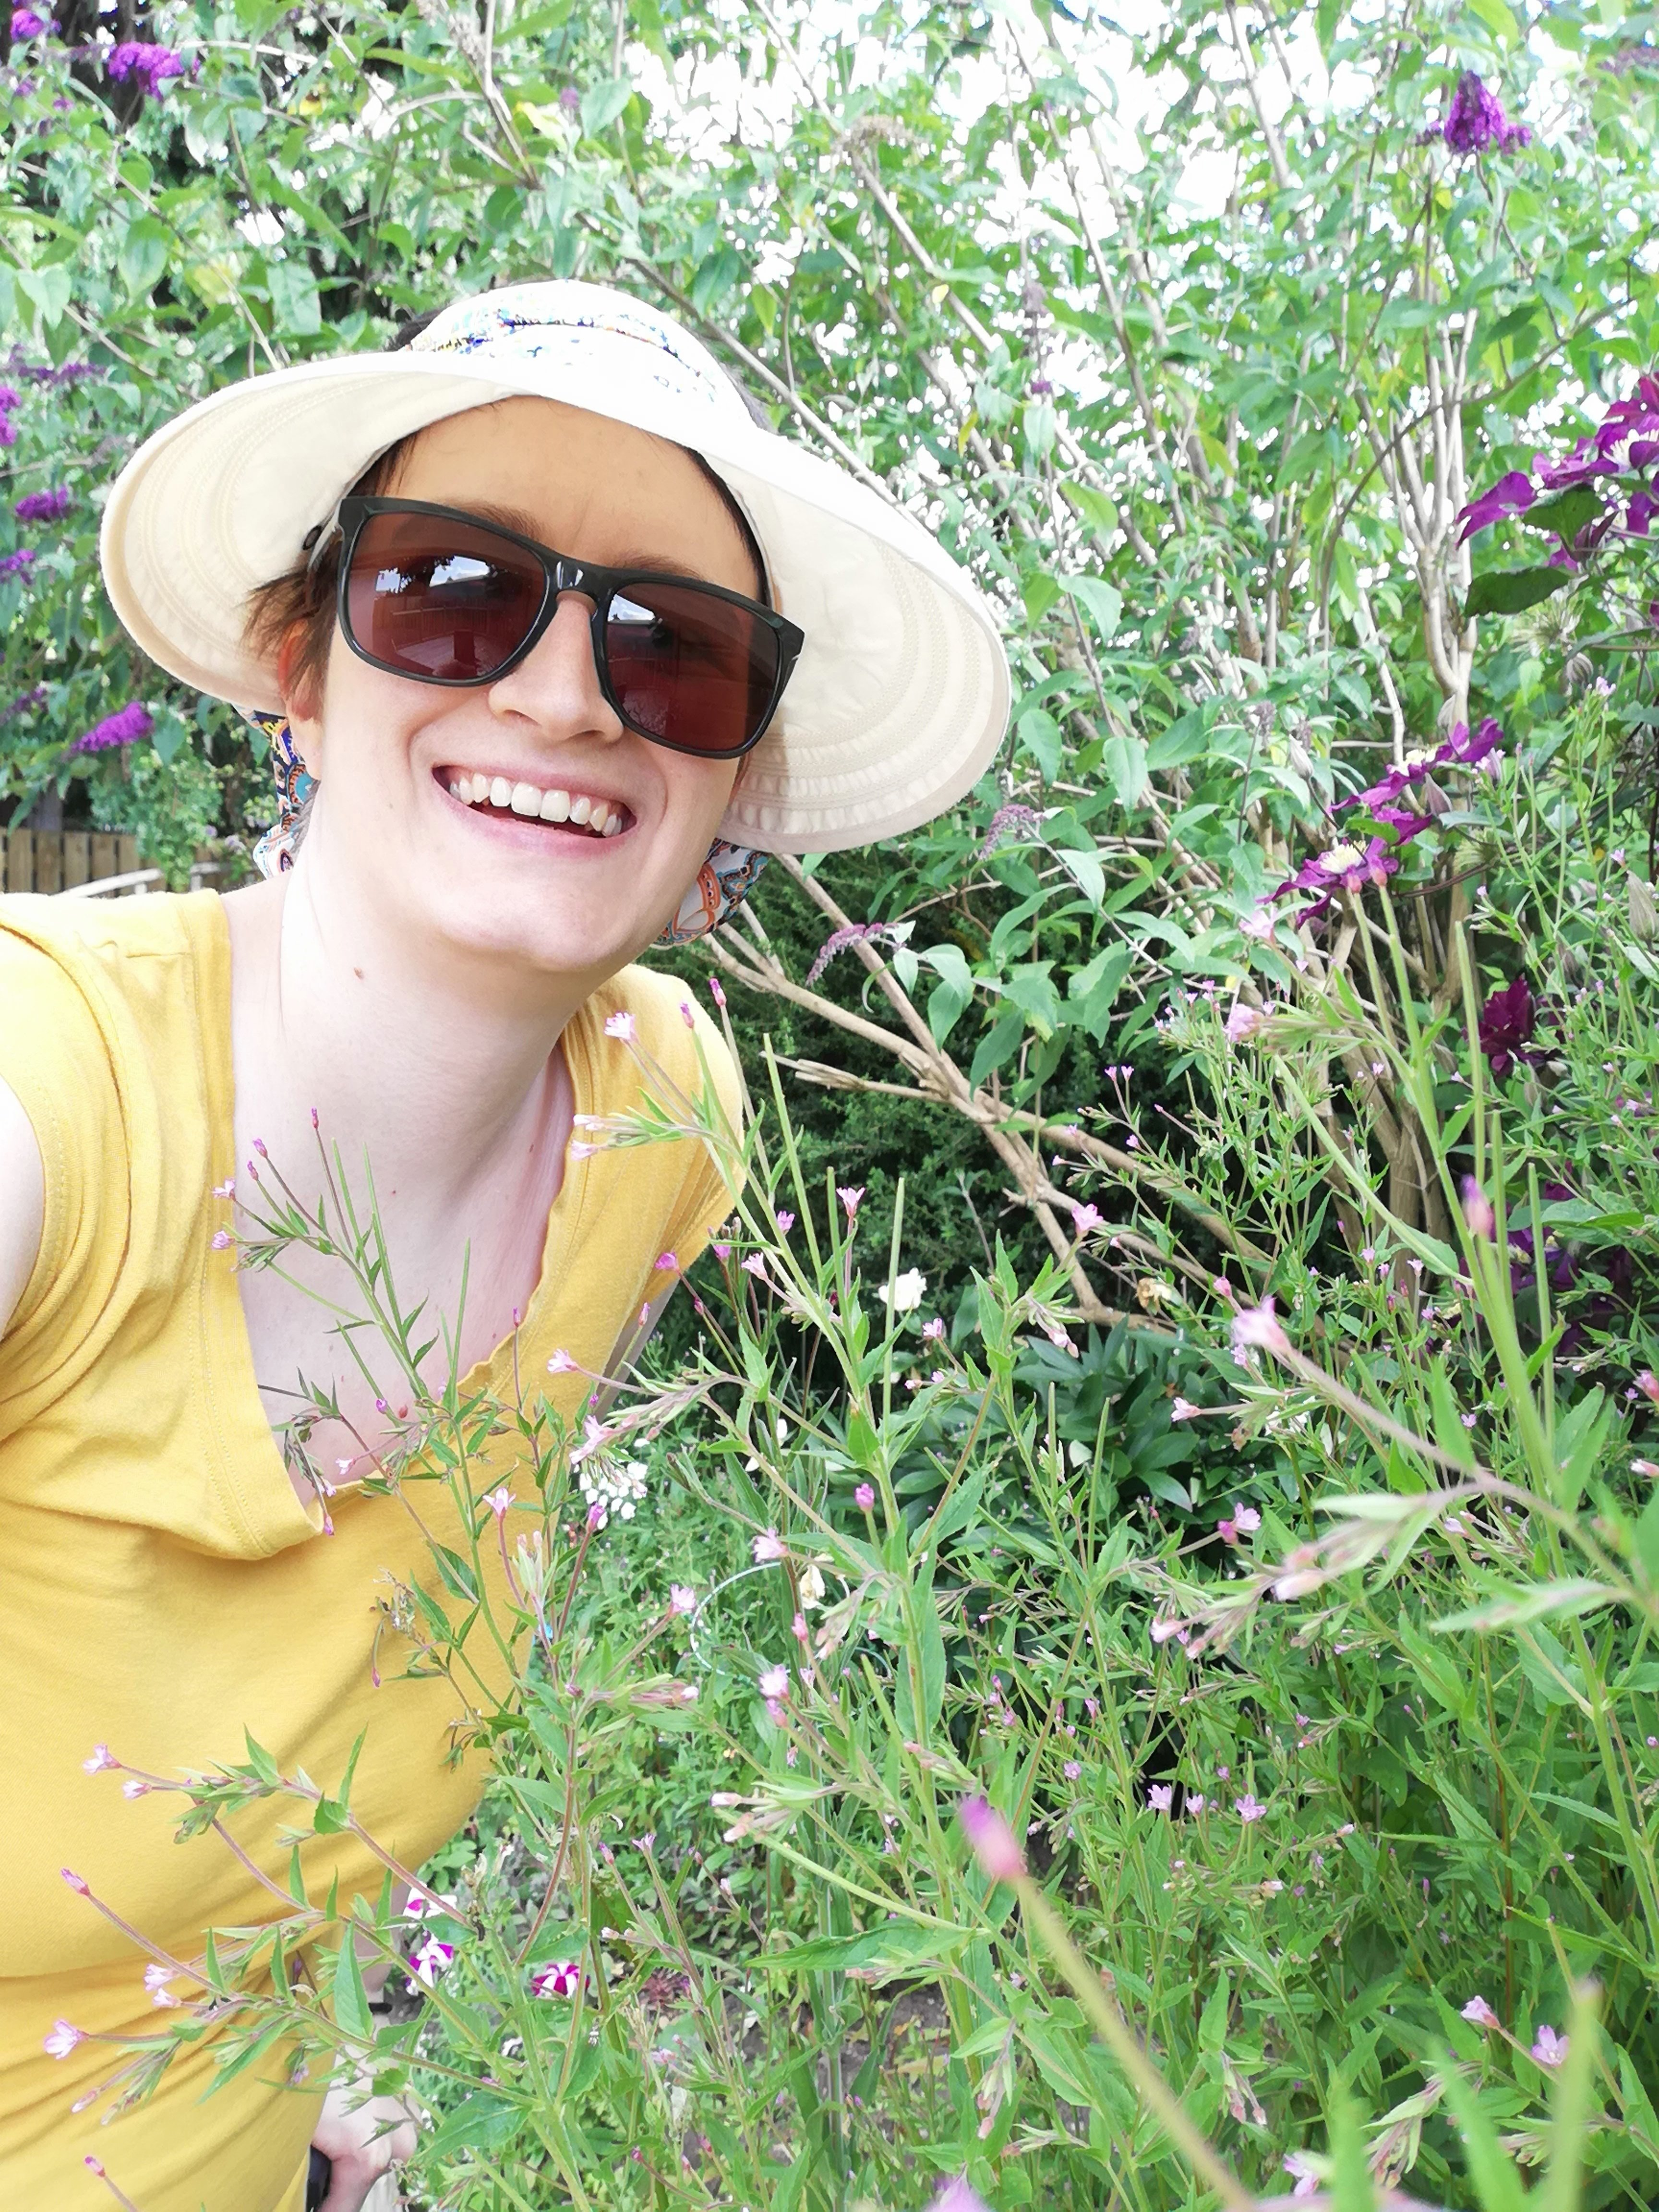 Char in the garden among the flowers. Wearing a sunhat and sunglasses.